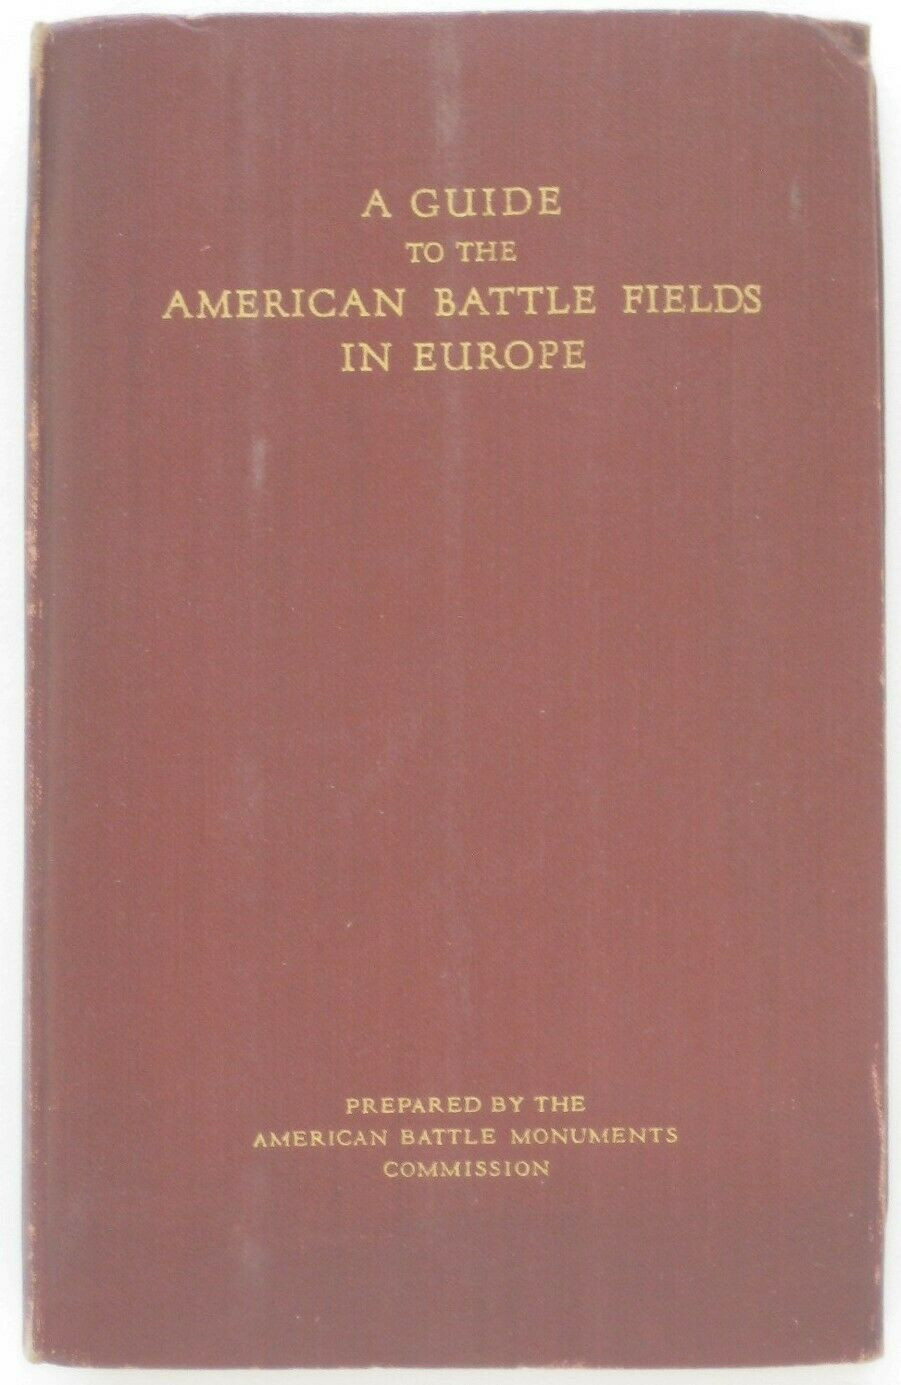 """Original hardcover 1927 first edition of """"A Guide to the American Battle Fields in Europe,"""" prepared for the American Battle Fields Commission."""